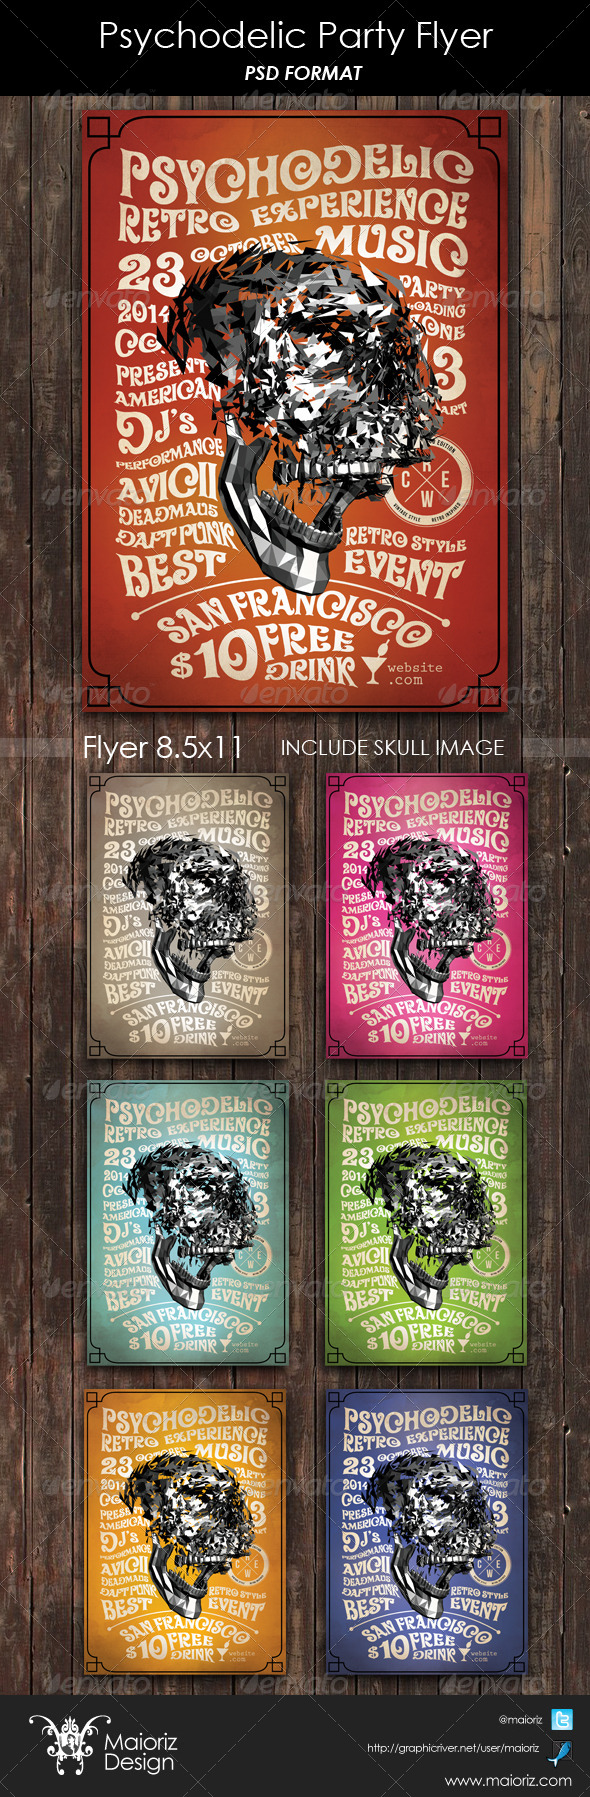 GraphicRiver Psychodelic Party Flyer 6235367